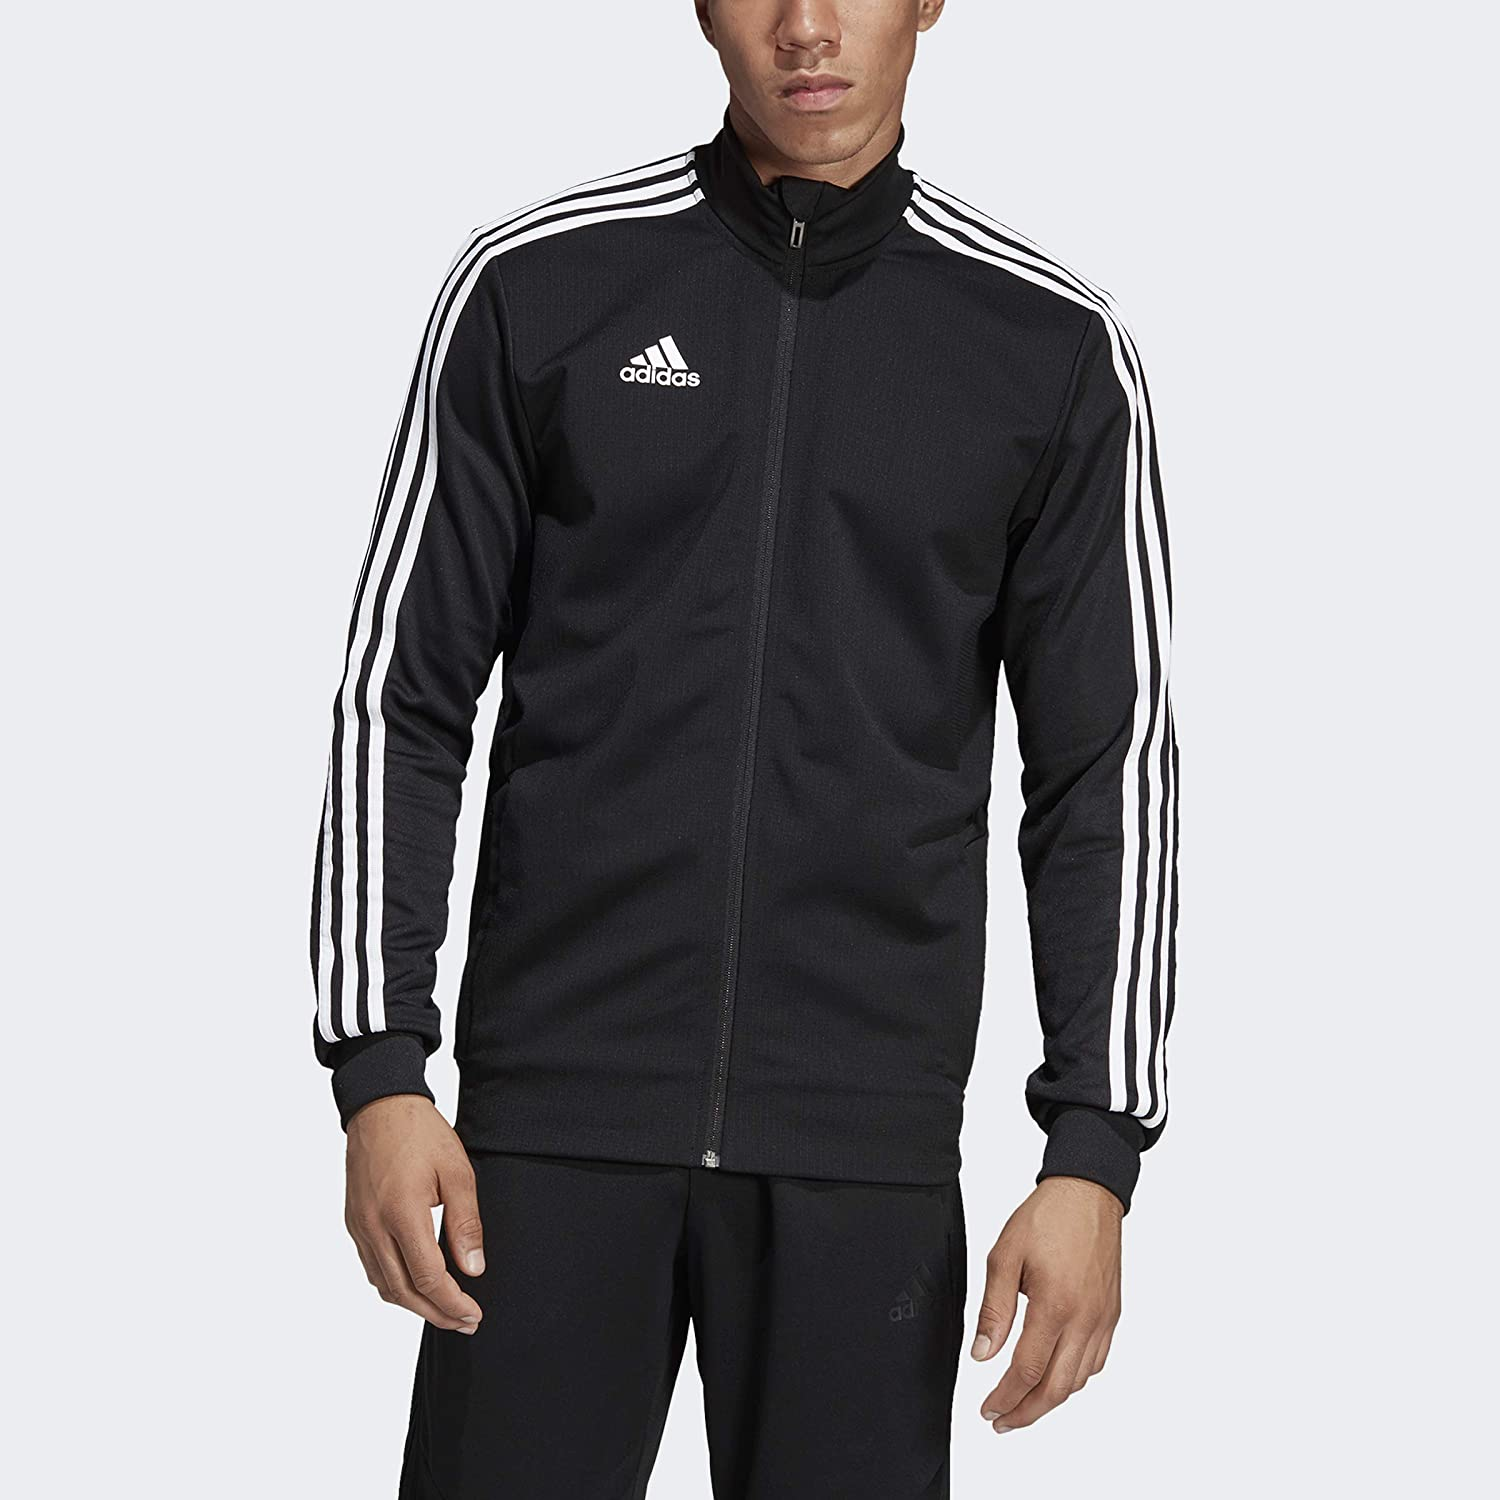 Details about Adidas Men TIRO 19 Training FZ Jacket Shirts Navy Jersey Top Sweat Shirt DT5272